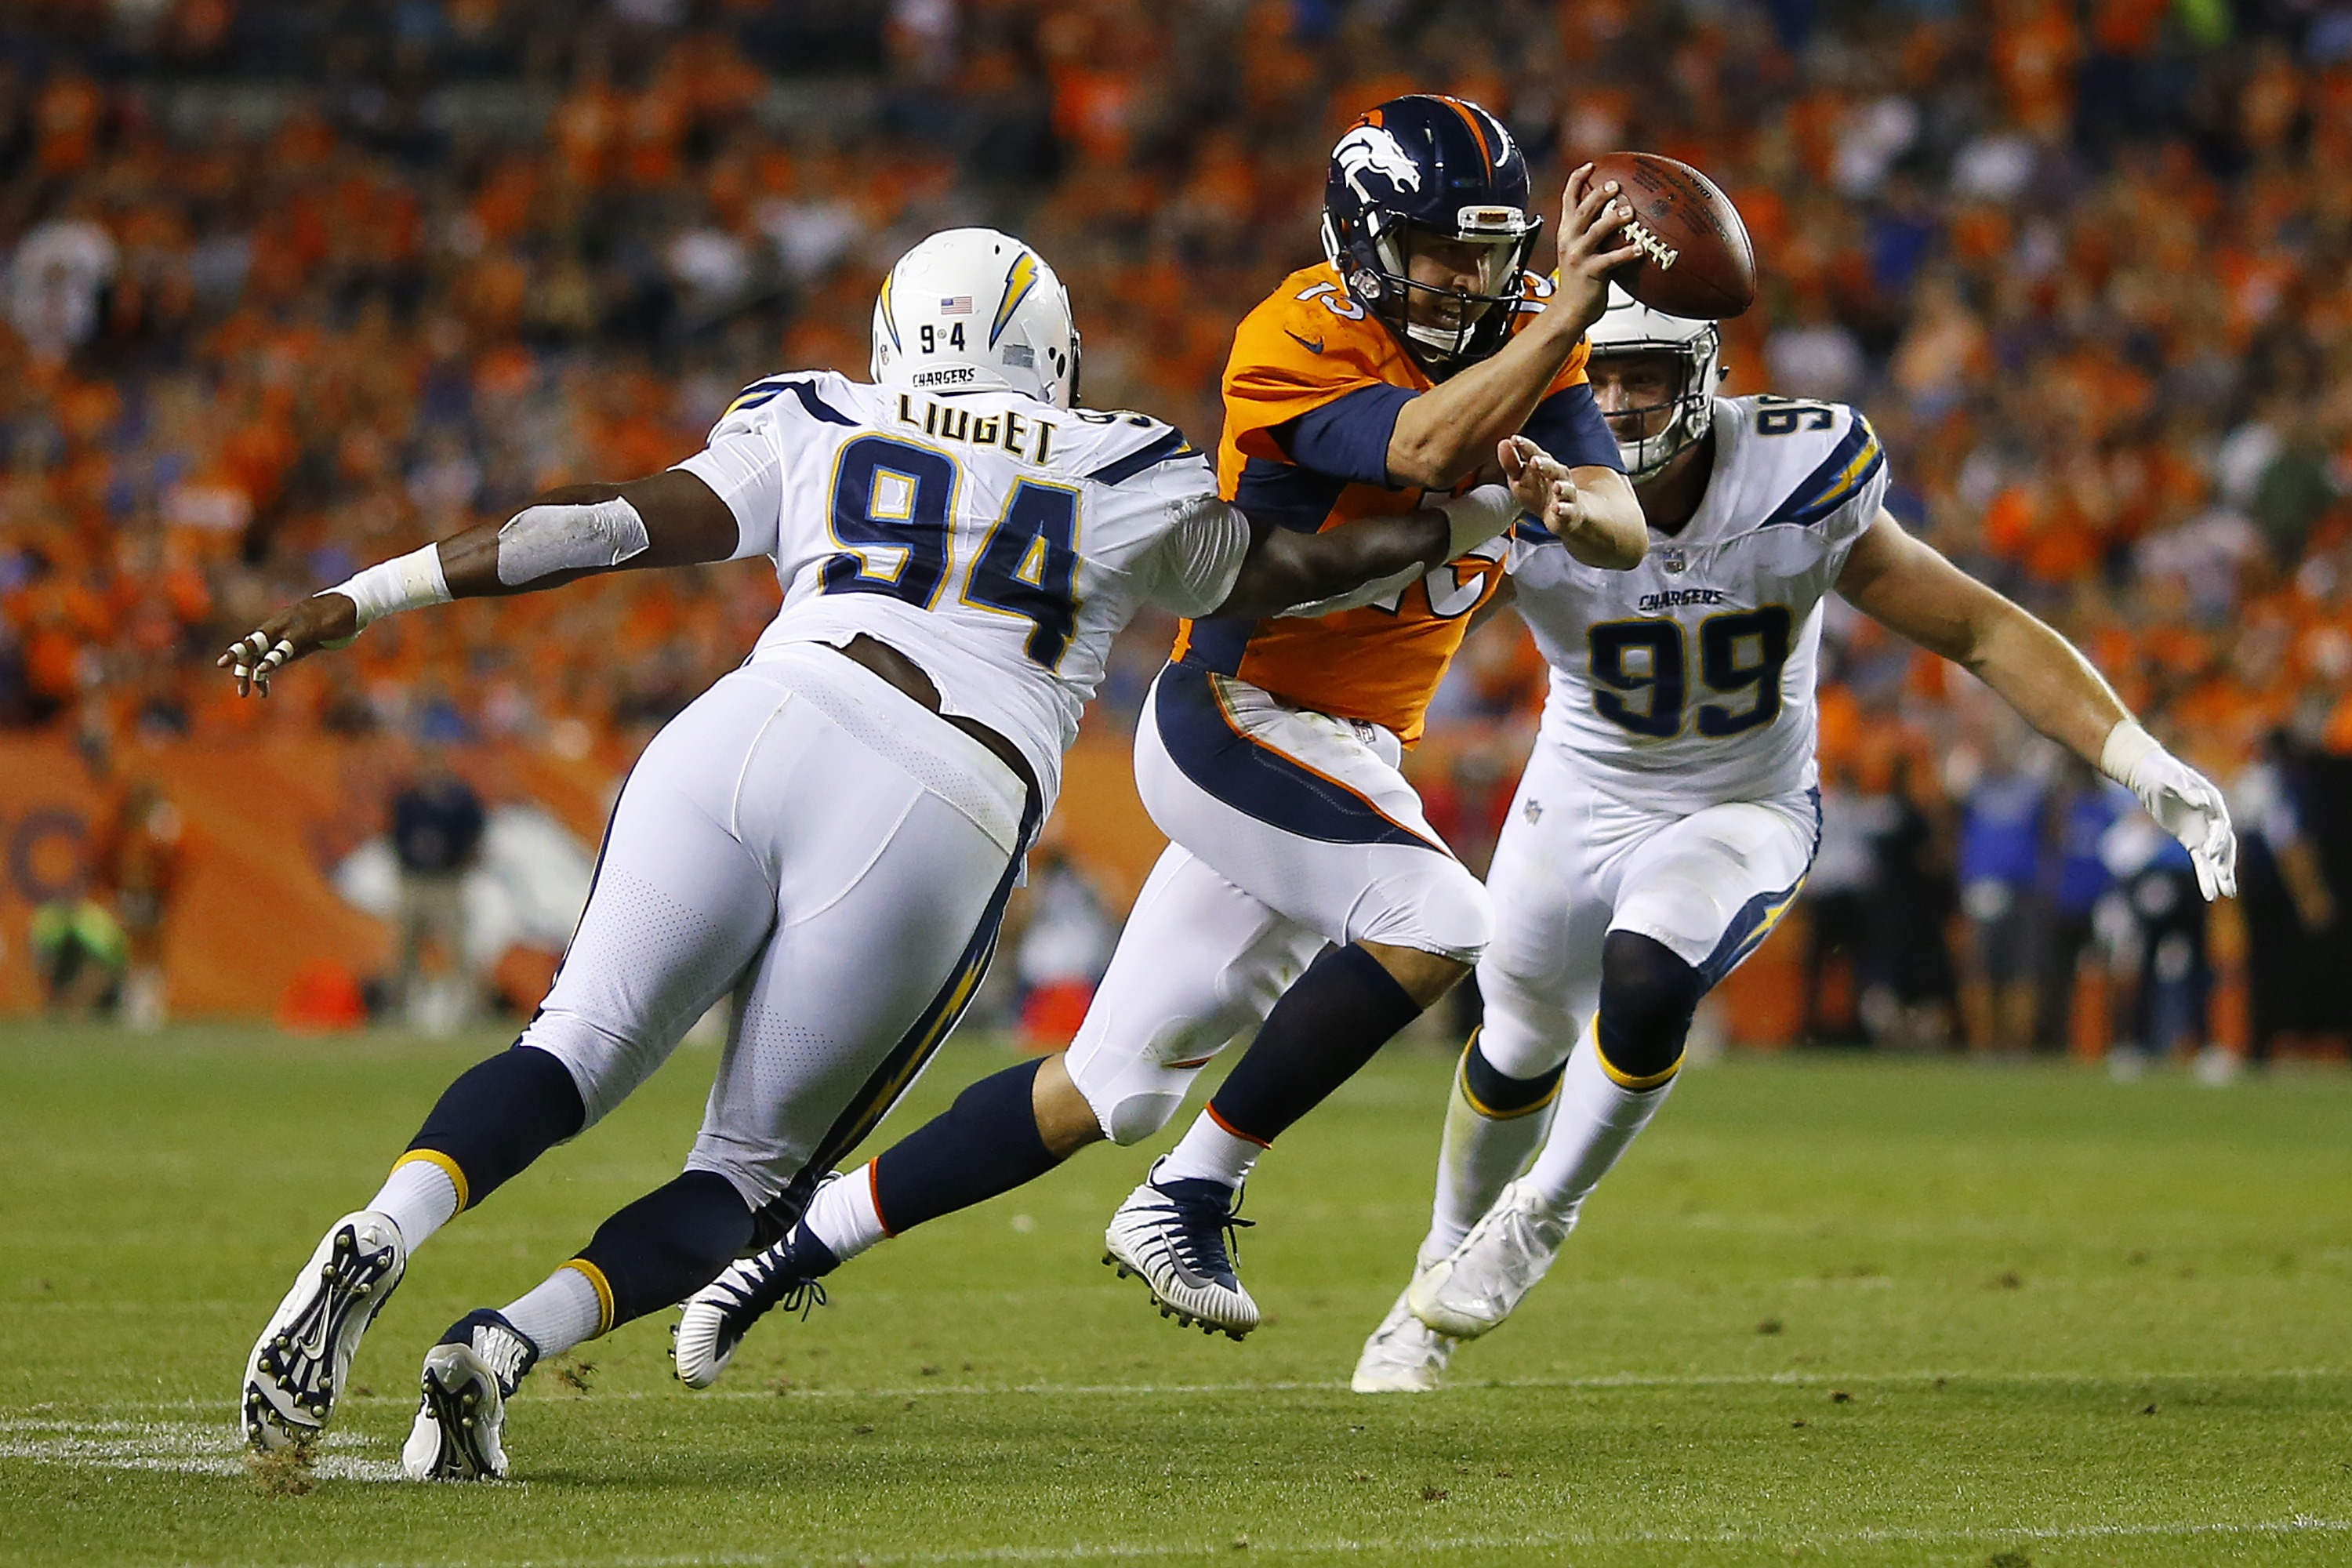 Los Angeles Chargers 3 Takeaways from Week 1 vs Broncos Page 2